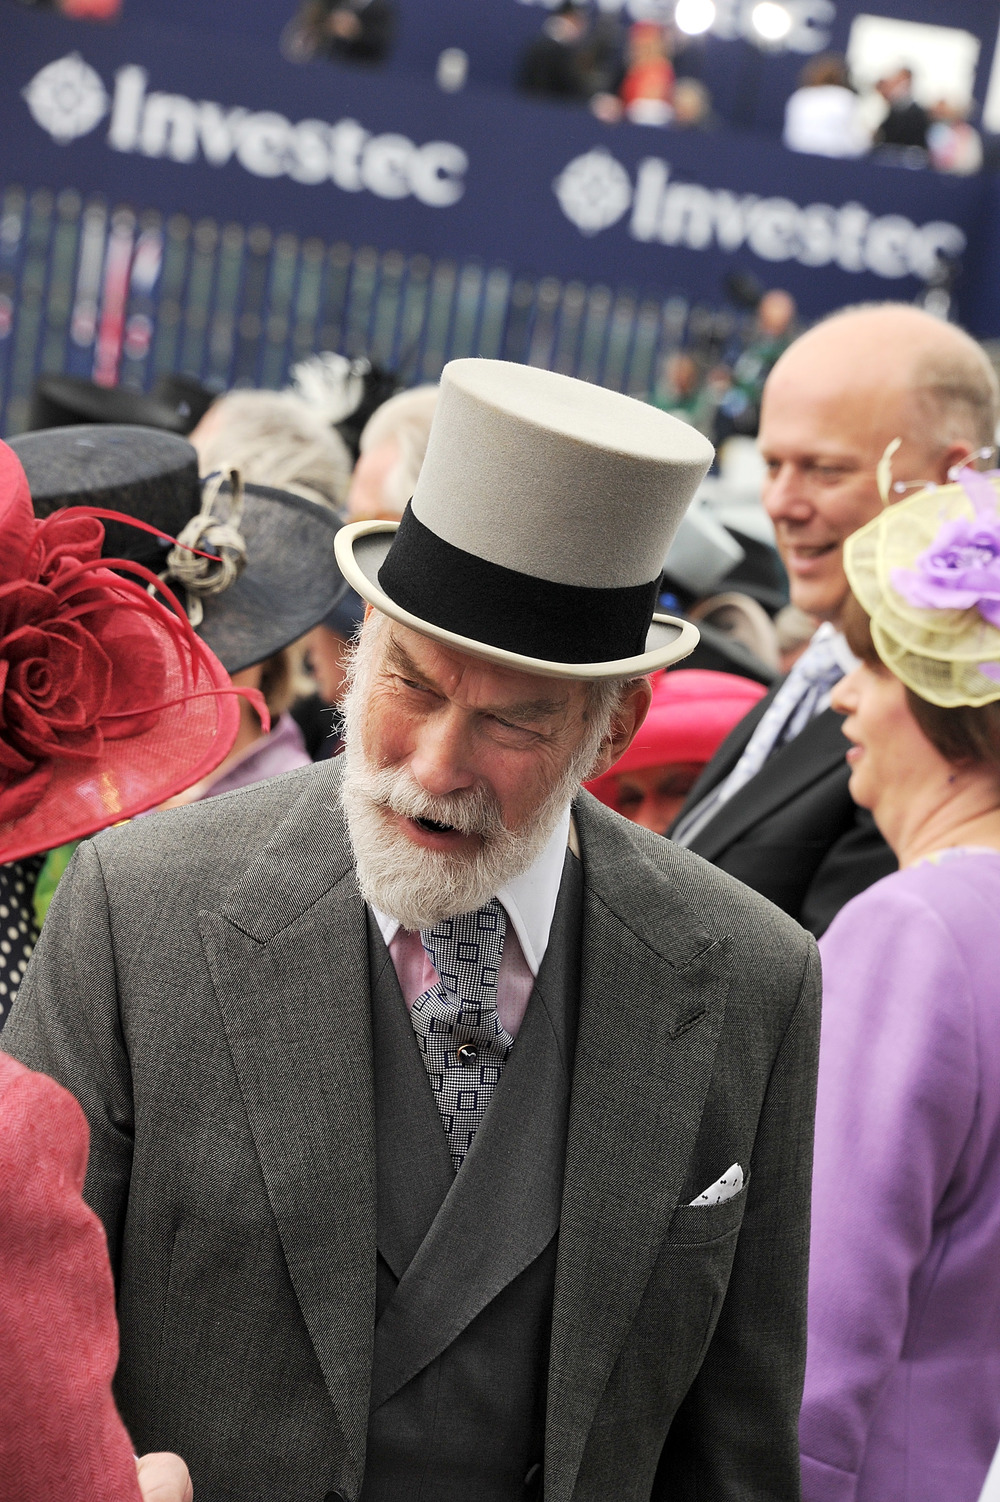 Prince-Michael-Kent-attended-derby.jpg